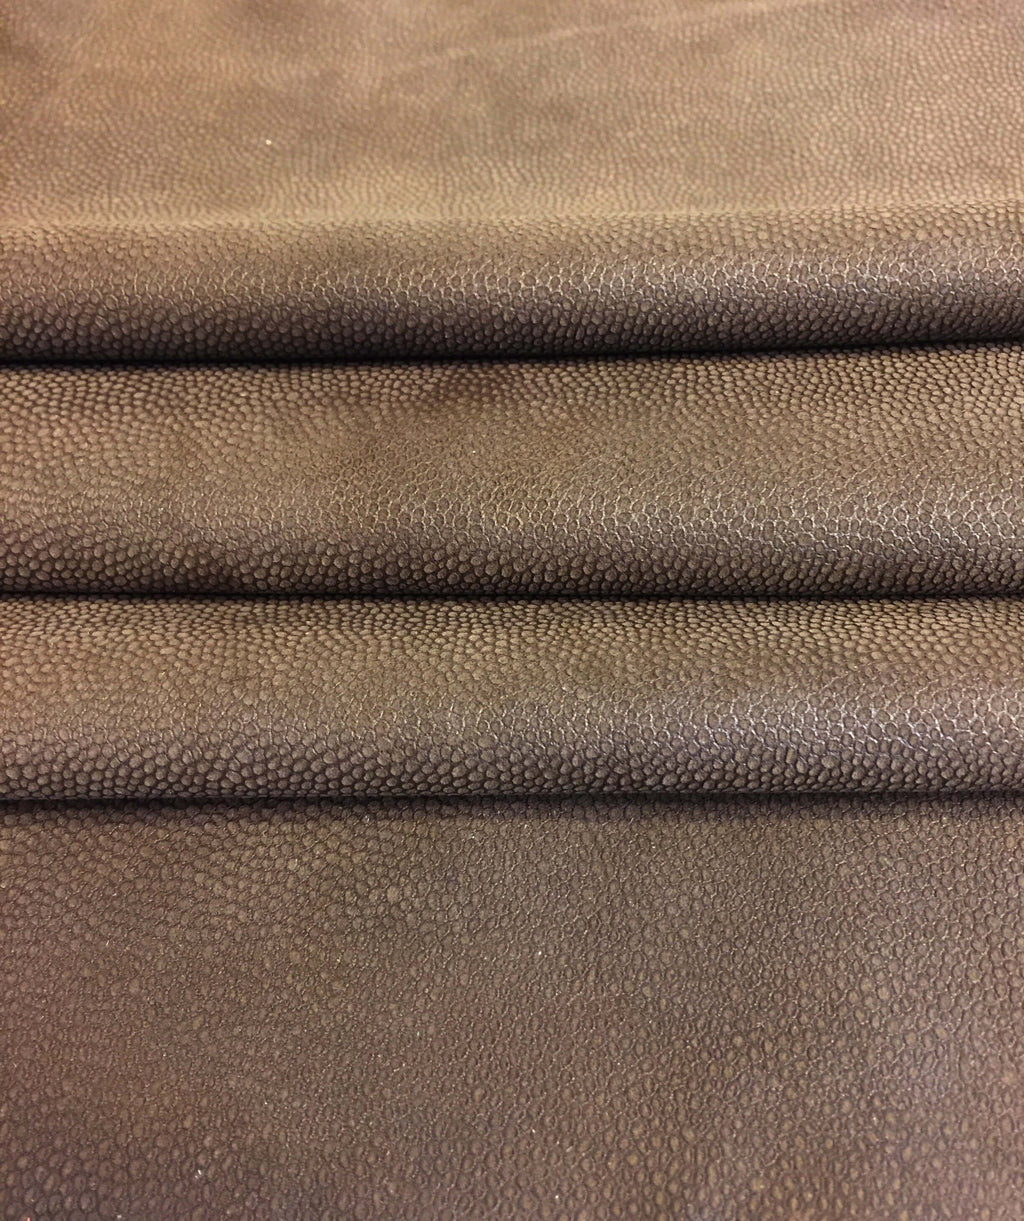 SALE Lambskin Genuine Leather Animal Hides Brown Suede Craft and DIY Projects